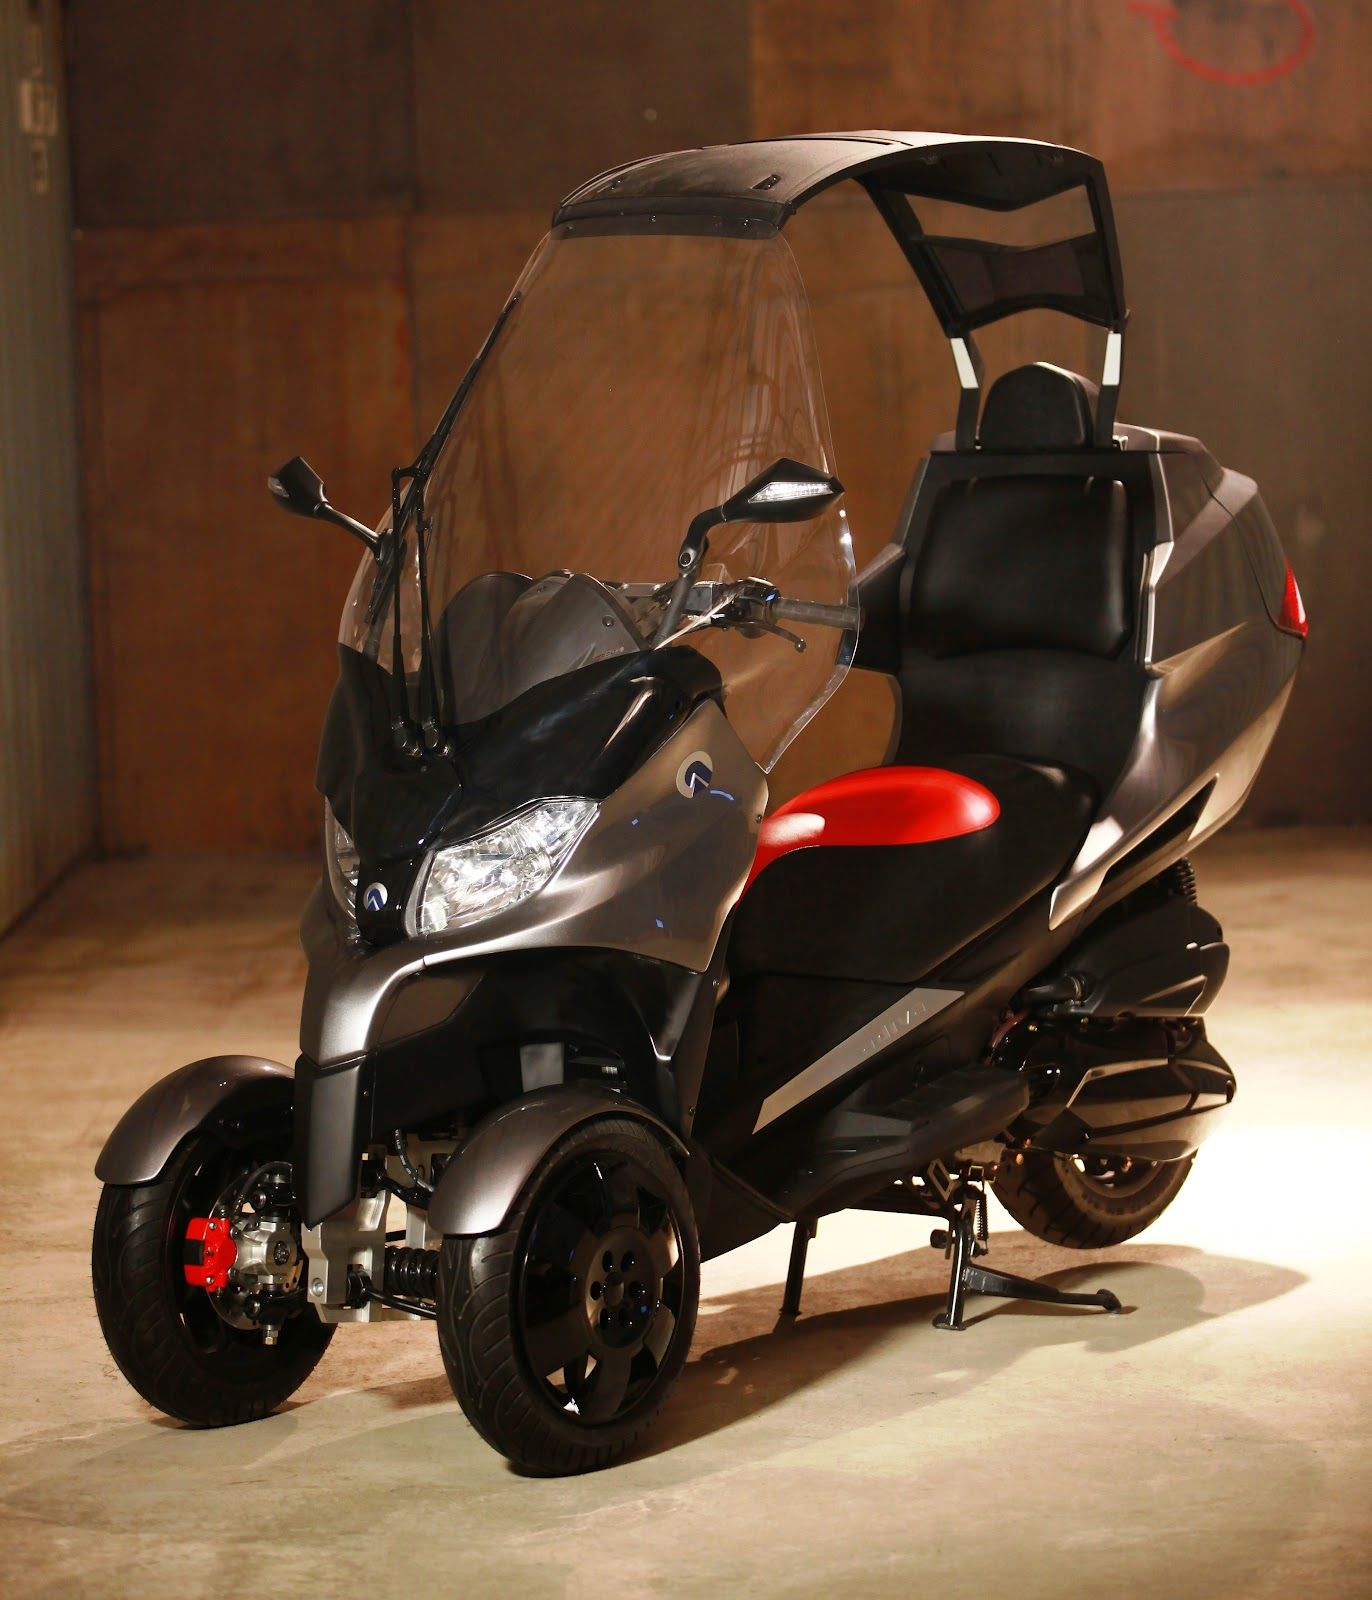 New Adiva Ad3 Kymco Engine Www Renaniatrust Com Scooter Bike